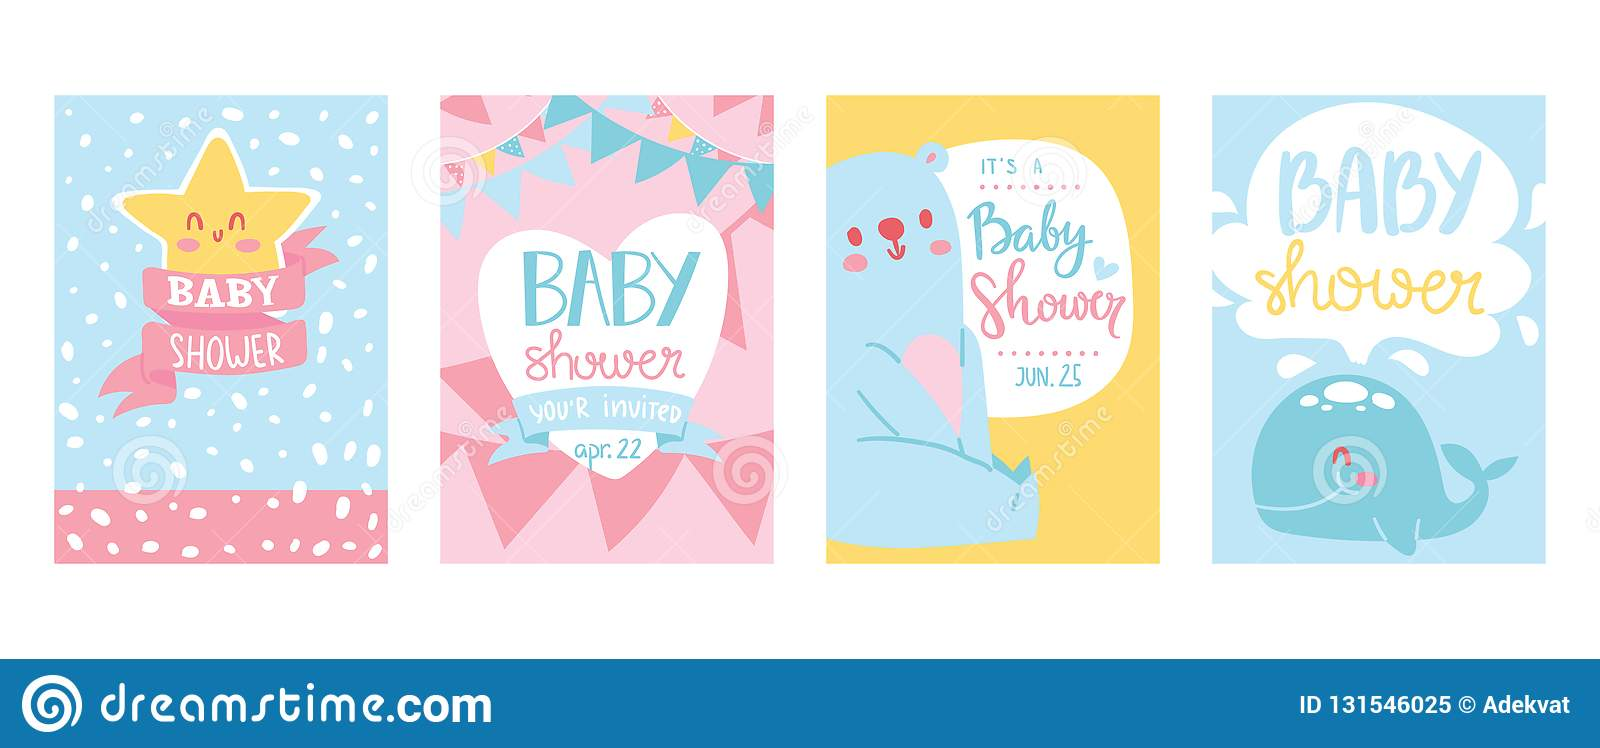 Baby shower cards vector illustration set. Cute invitation cards for newborn boy and girl party. Invitation greeting for